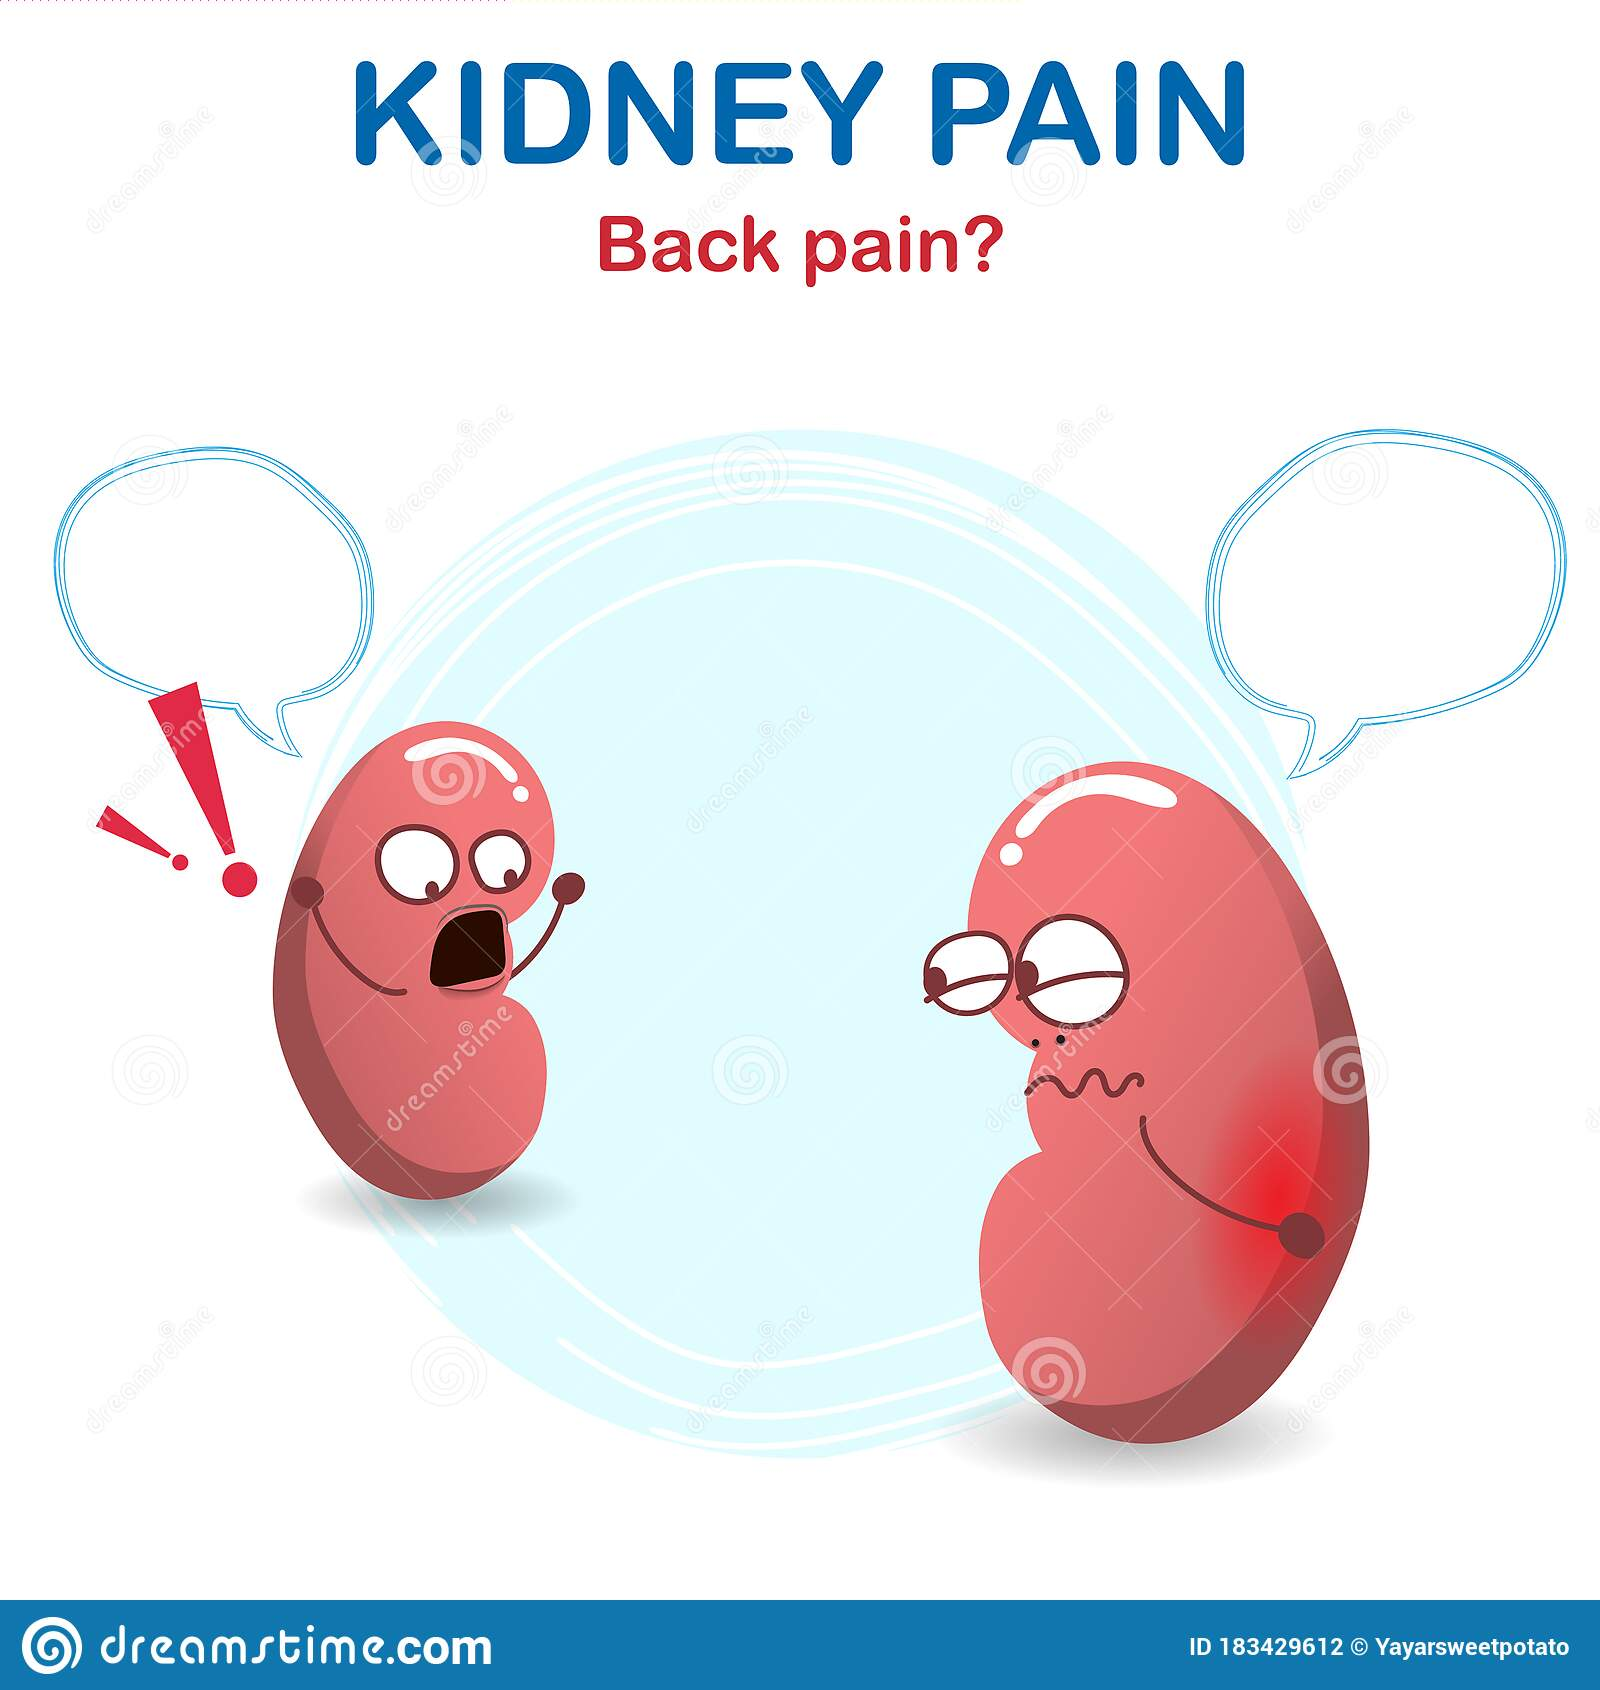 Sign And Symptom Of Kidney Disease Bad Health Back Pain From A Kidney Stone Stock Vector Illustration Of Concept Flat 183429612